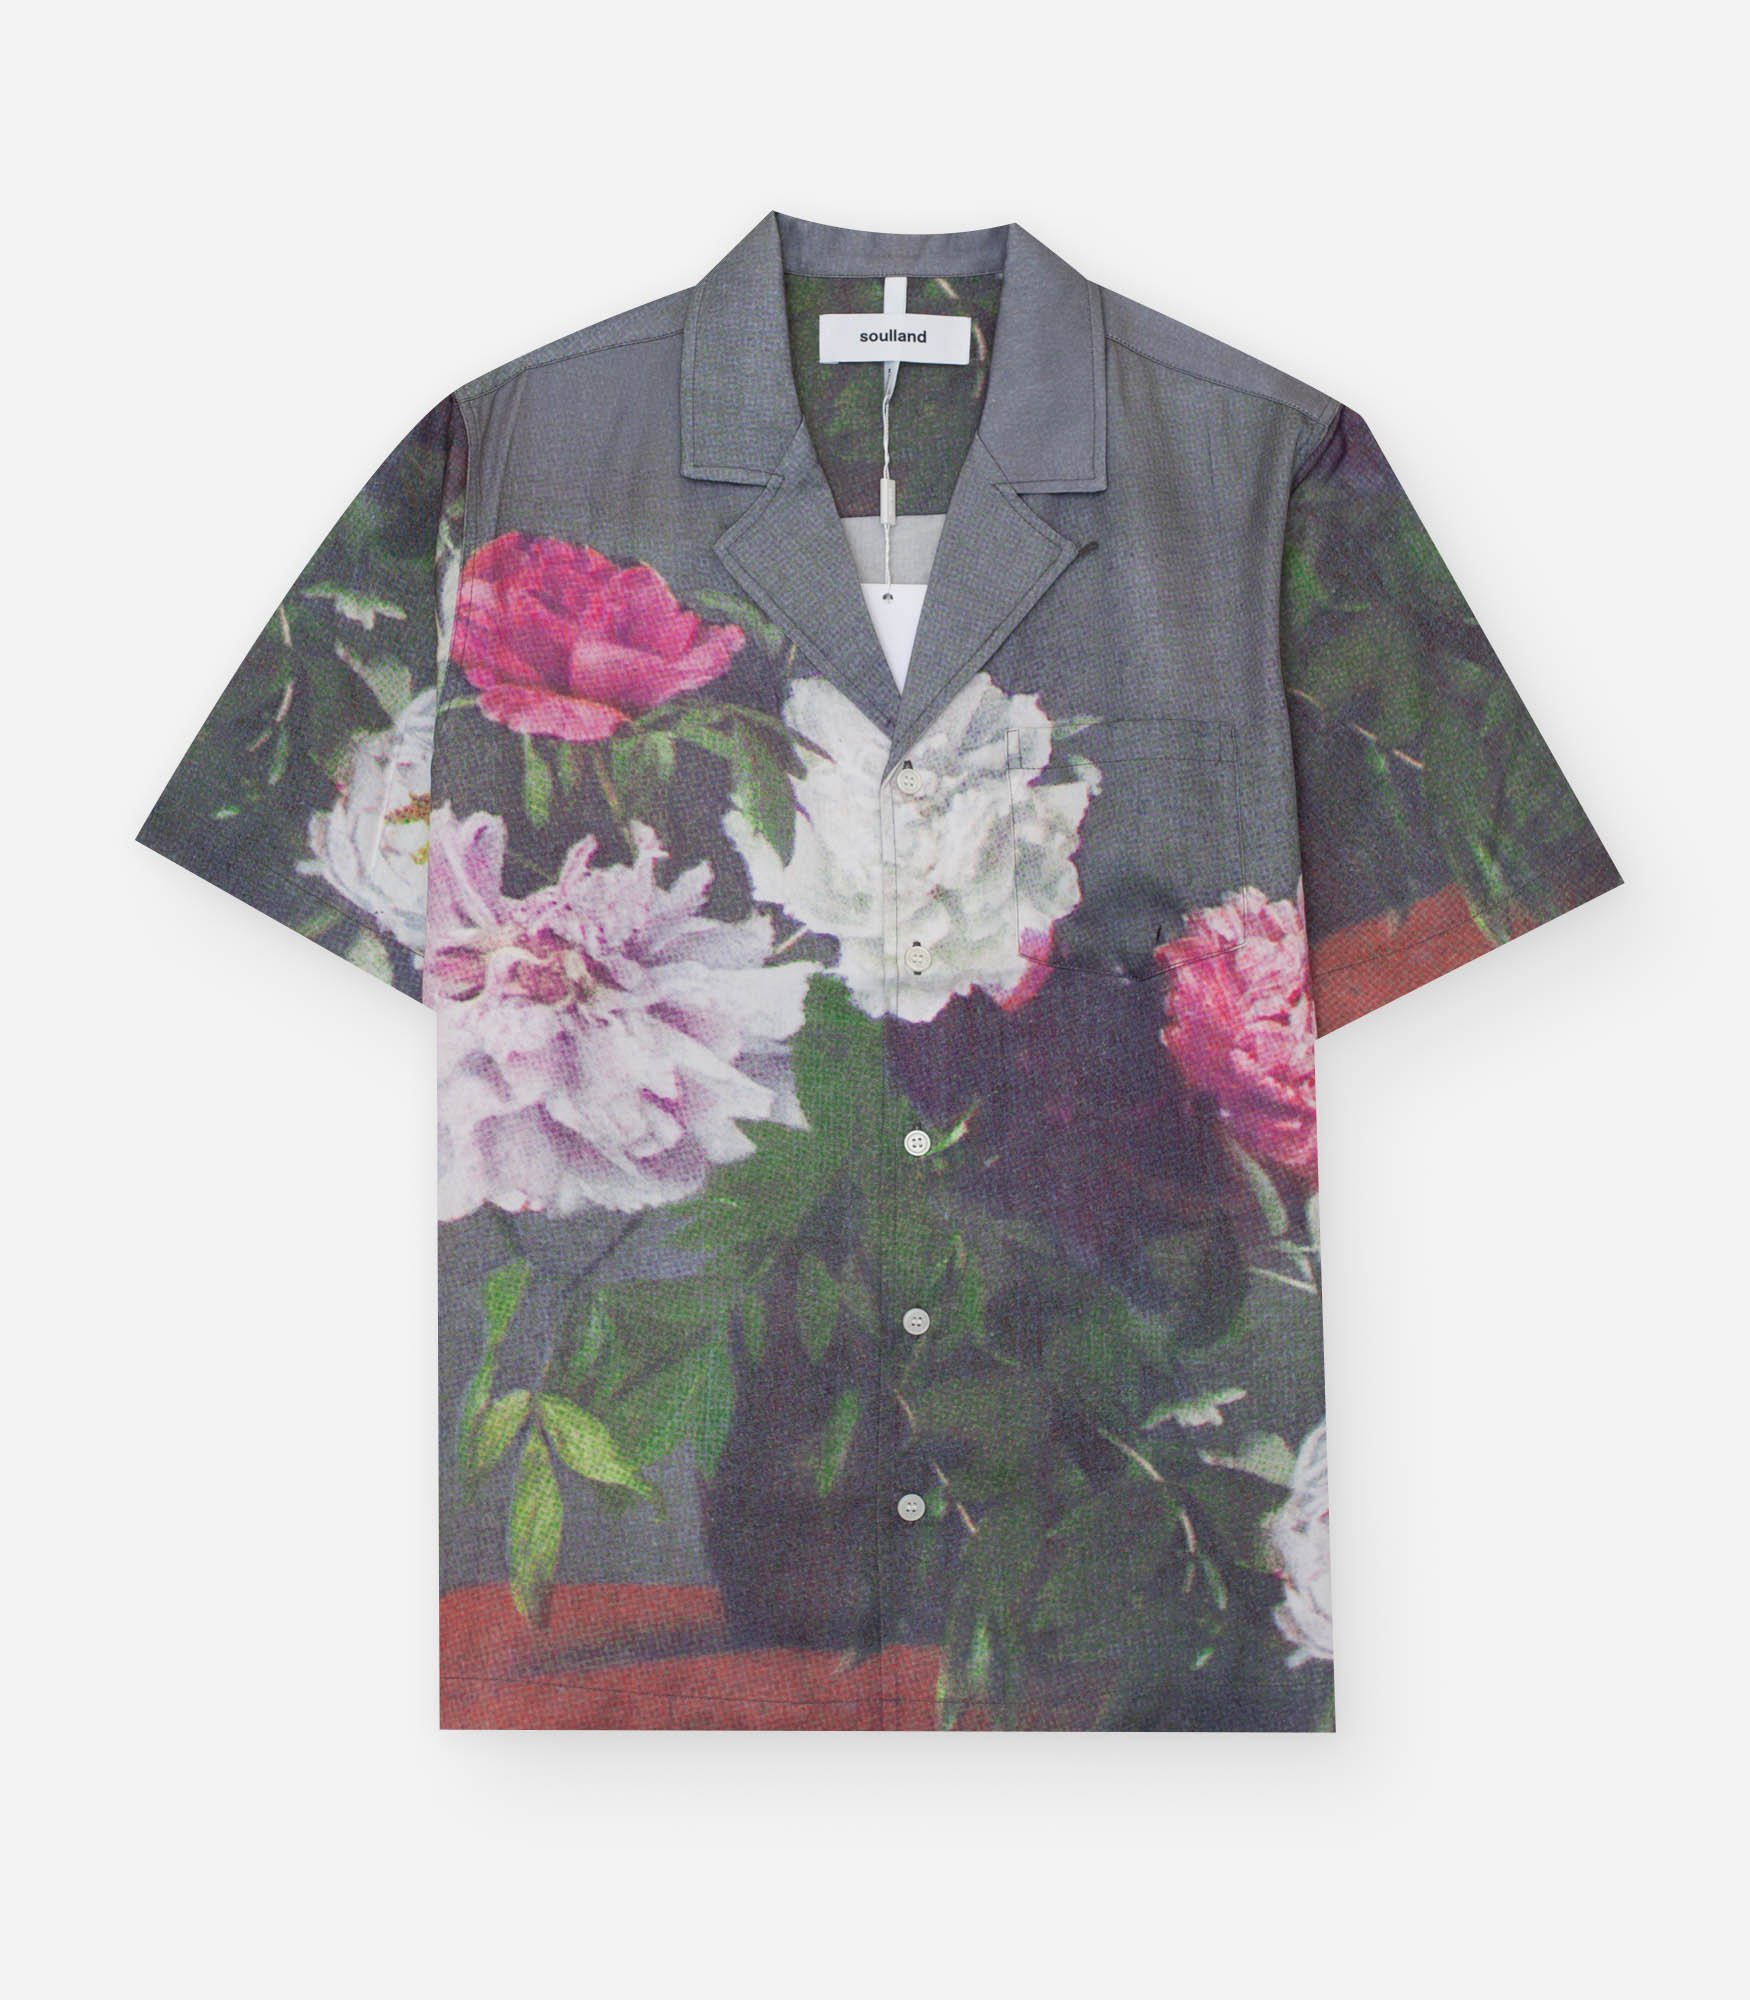 Soulland Clothing ORSON SHIRT FLOWERS